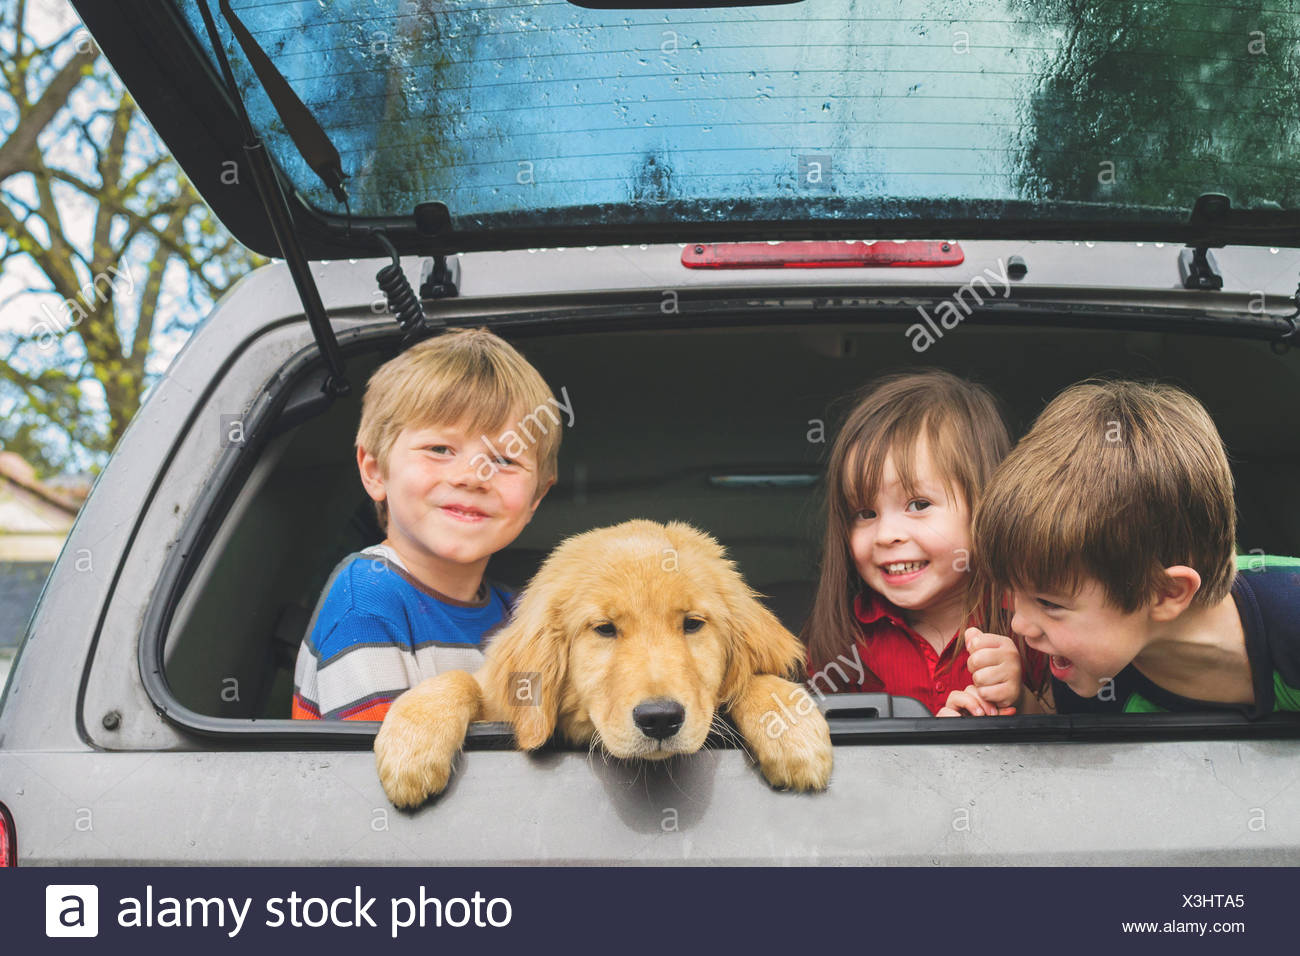 Three children in the back of vehicle with new puppy - Stock Image